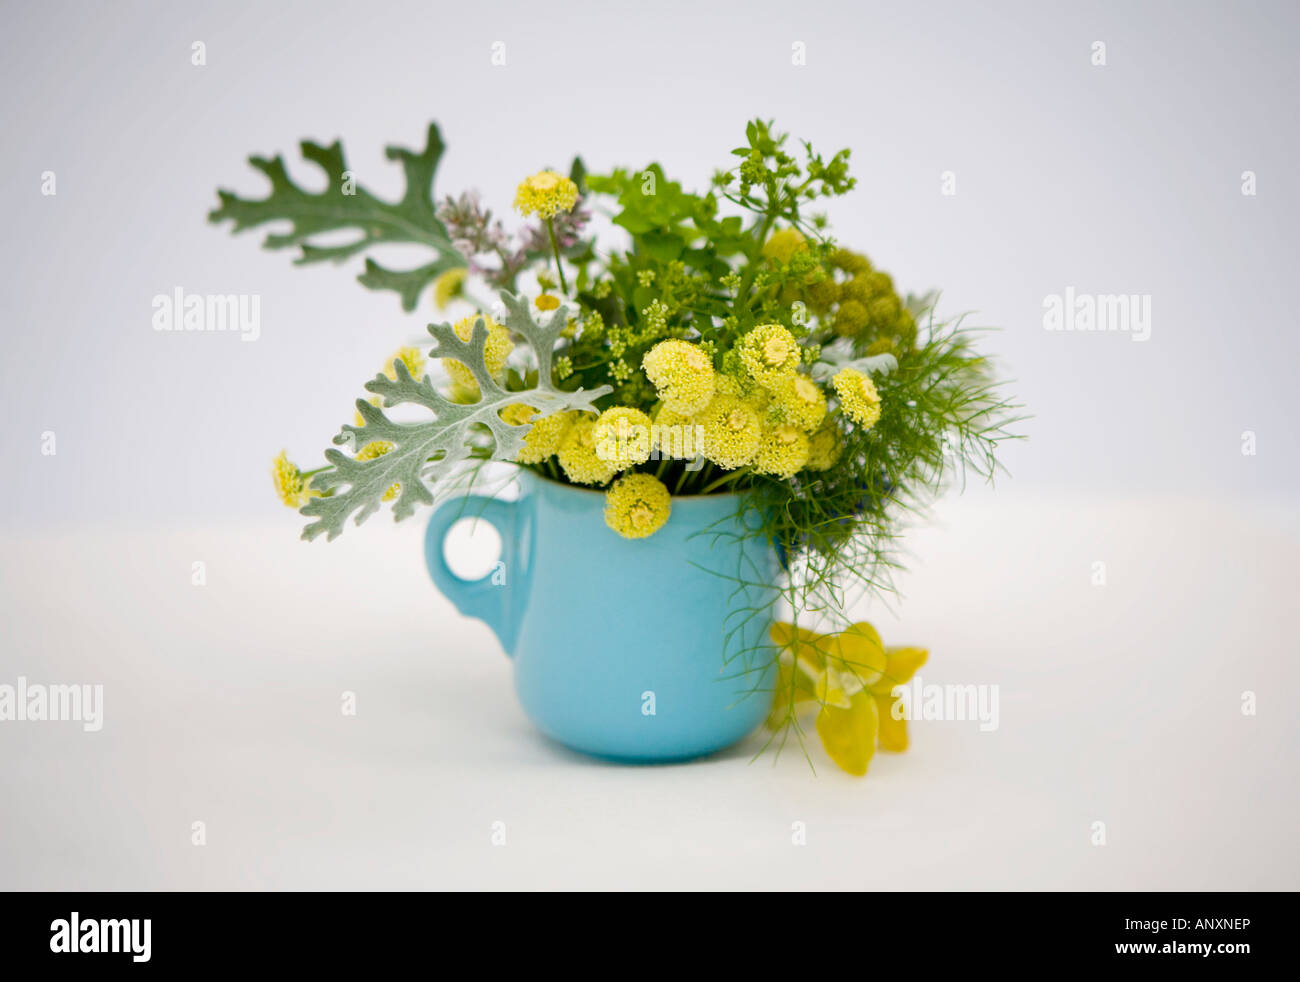 Flowers in a blue china teacup - Stock Image